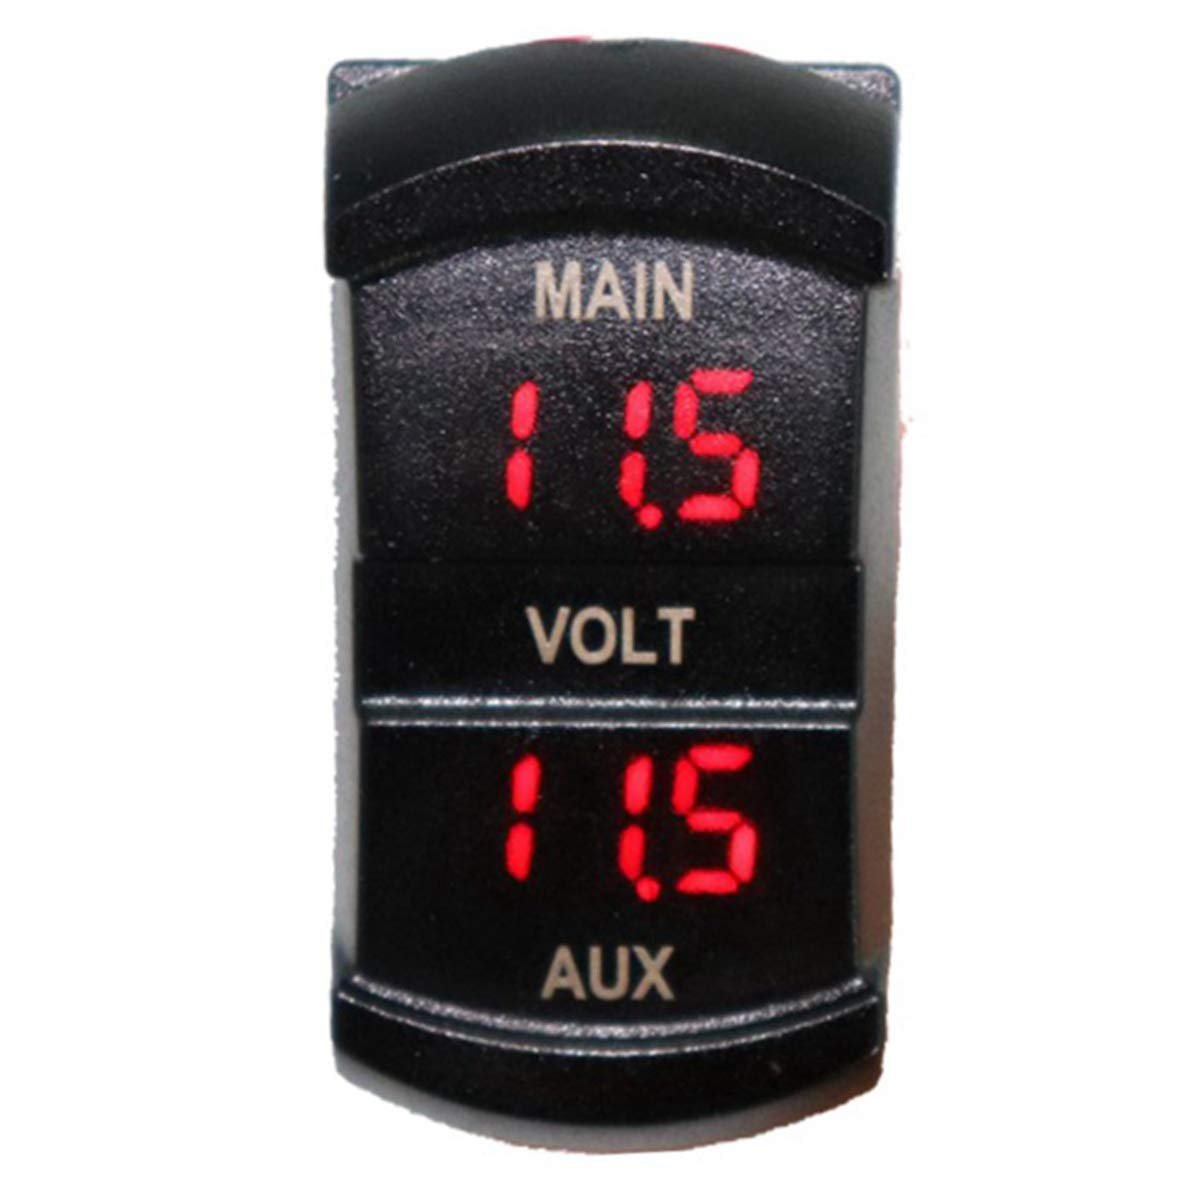 Qiorange 12 Volt Digital Car Battery Tester Vehicle Alternator Condition and Charging System Analyzer Type A